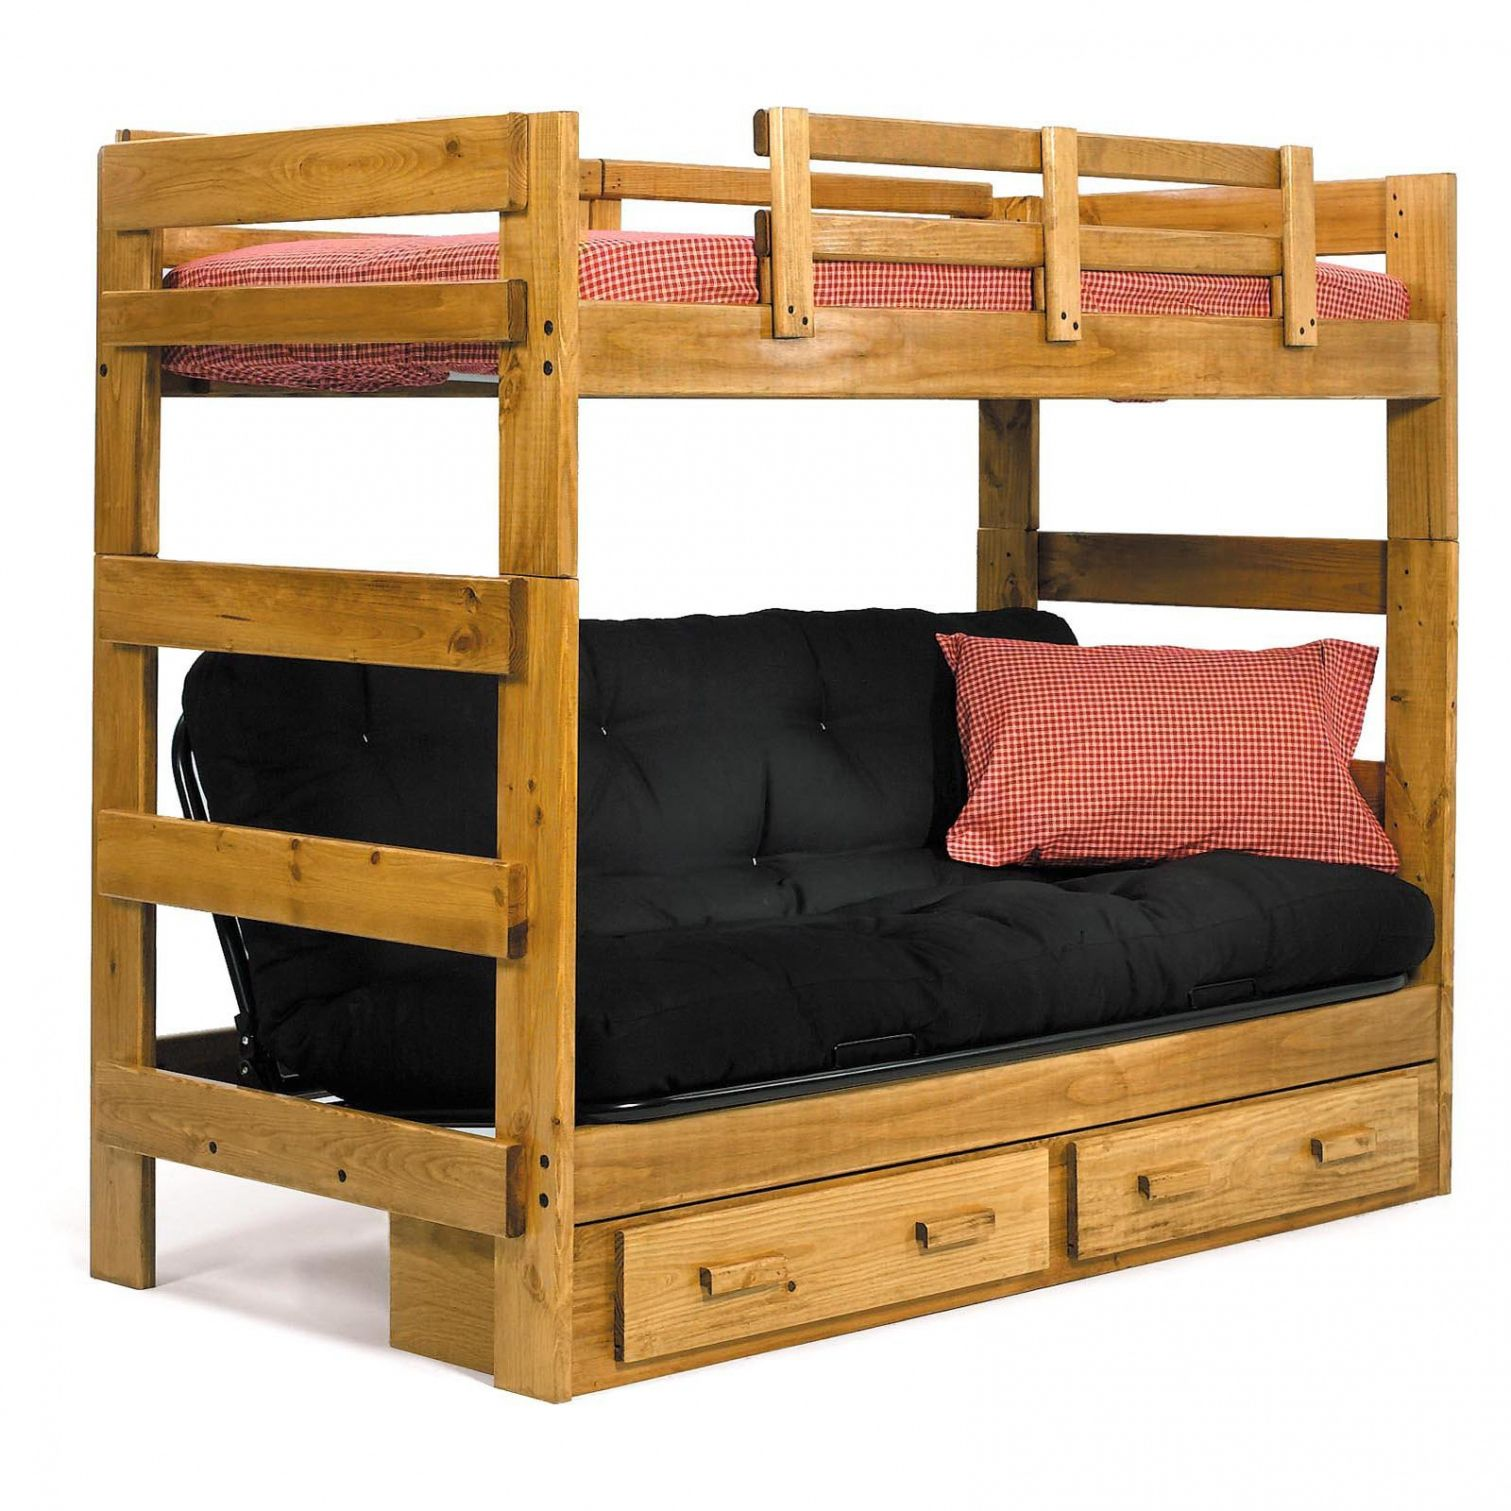 30 twin over futon bunk bed wood   modern bedroom interior design check more at http 30 twin over futon bunk bed wood   modern bedroom interior design      rh   pinterest